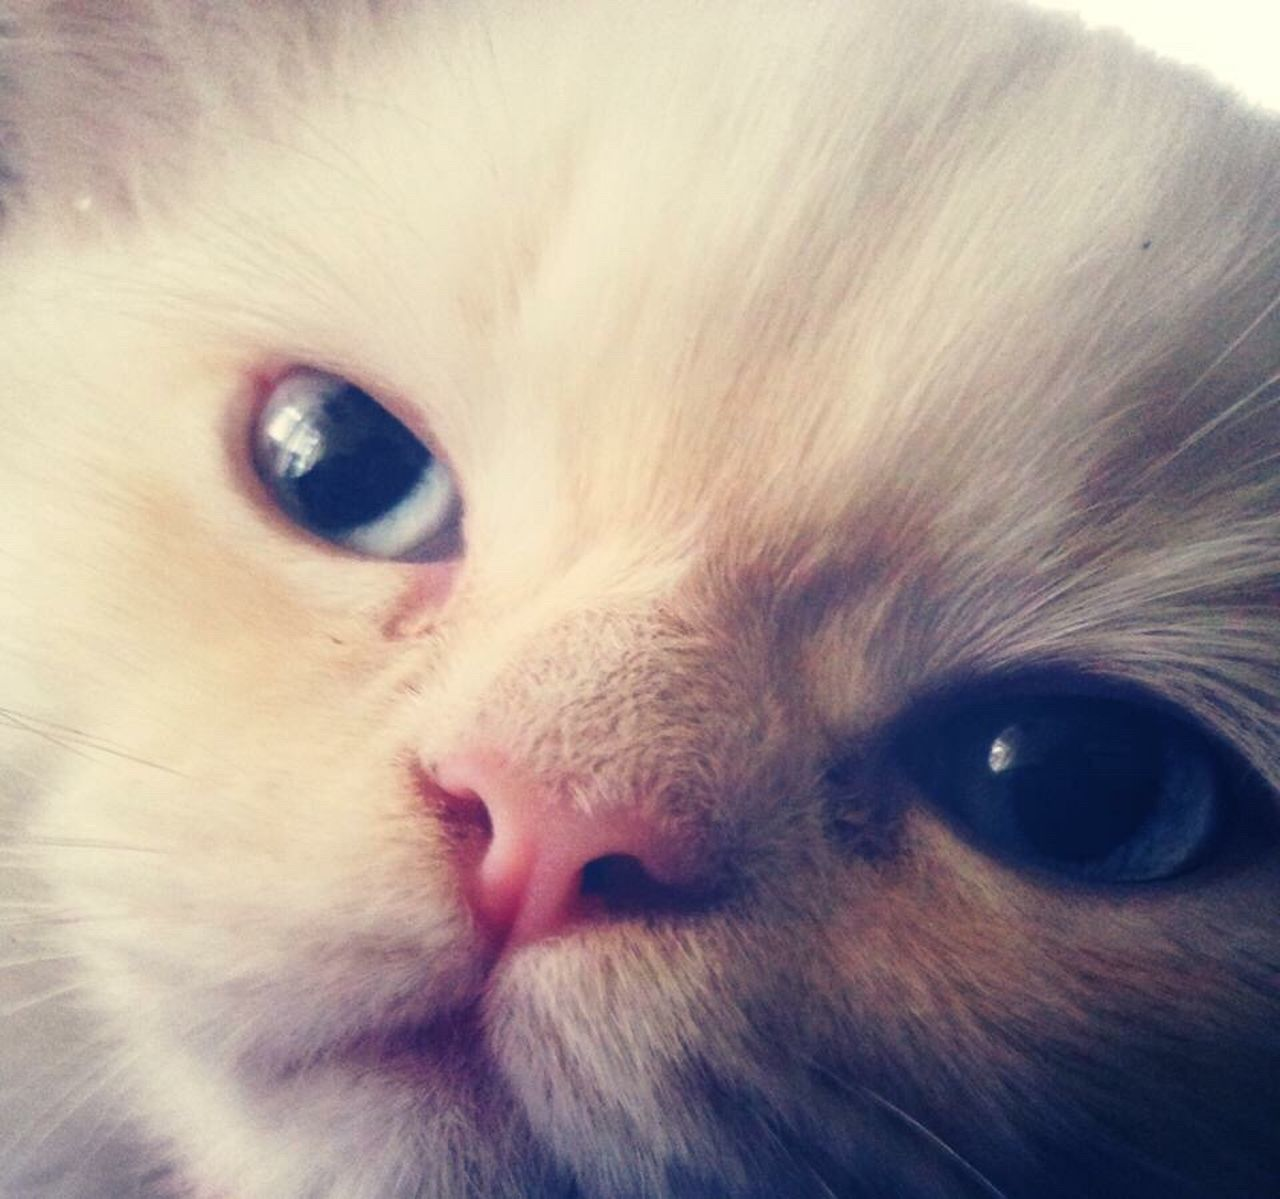 Domestic Animals Pets Domestic Cat Looking At Camera Close-up Mammal Animal Head  Portrait Animal Eye One Animal No People Animal Themes Feline Cat Cats Of EyeEm Catsagram Cat Lovers Cat♡ Persian Cat  Looking At Camera Rest In Peace ❤ Your First Day With Me Scenics Beauty In Nature Catlovers